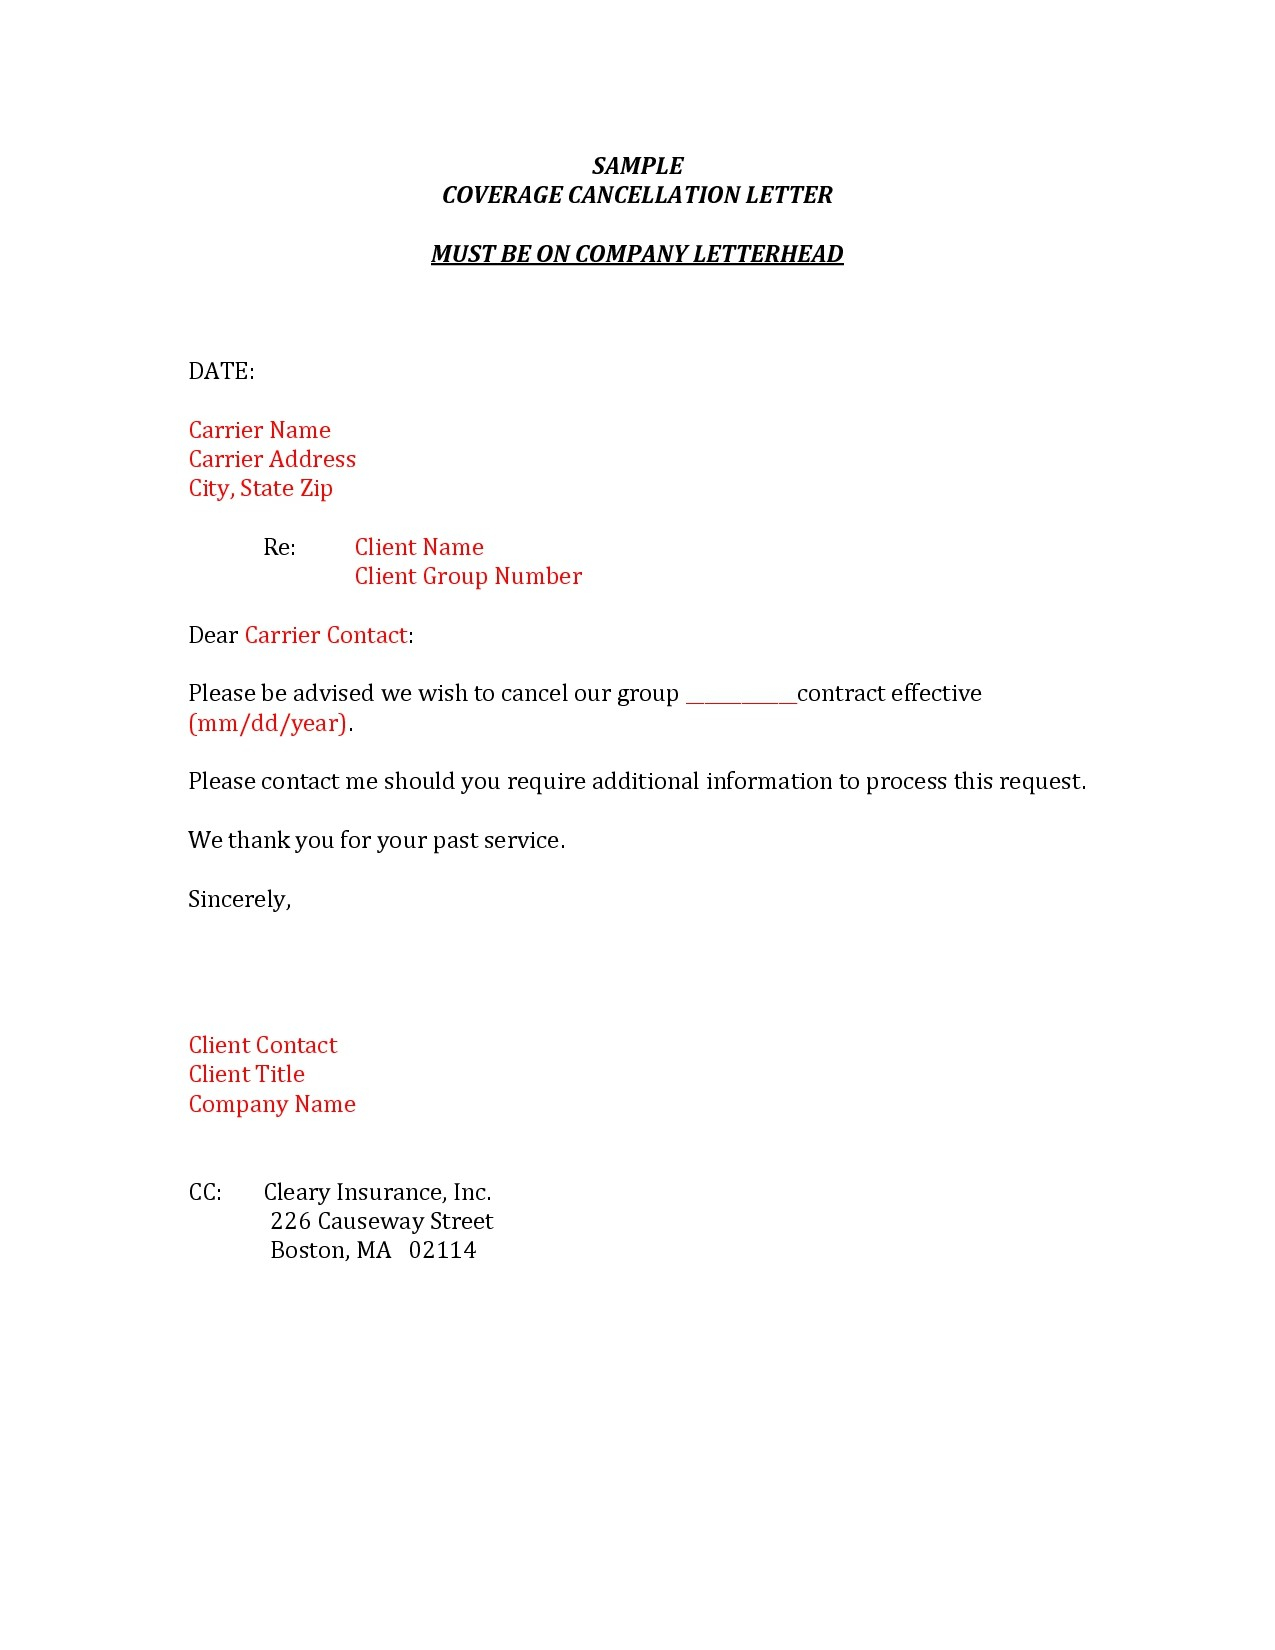 Insurance Policy Cancellation Letter Template - Resume Letter format Archives Page 56 Of 106 Jameskilloran Co